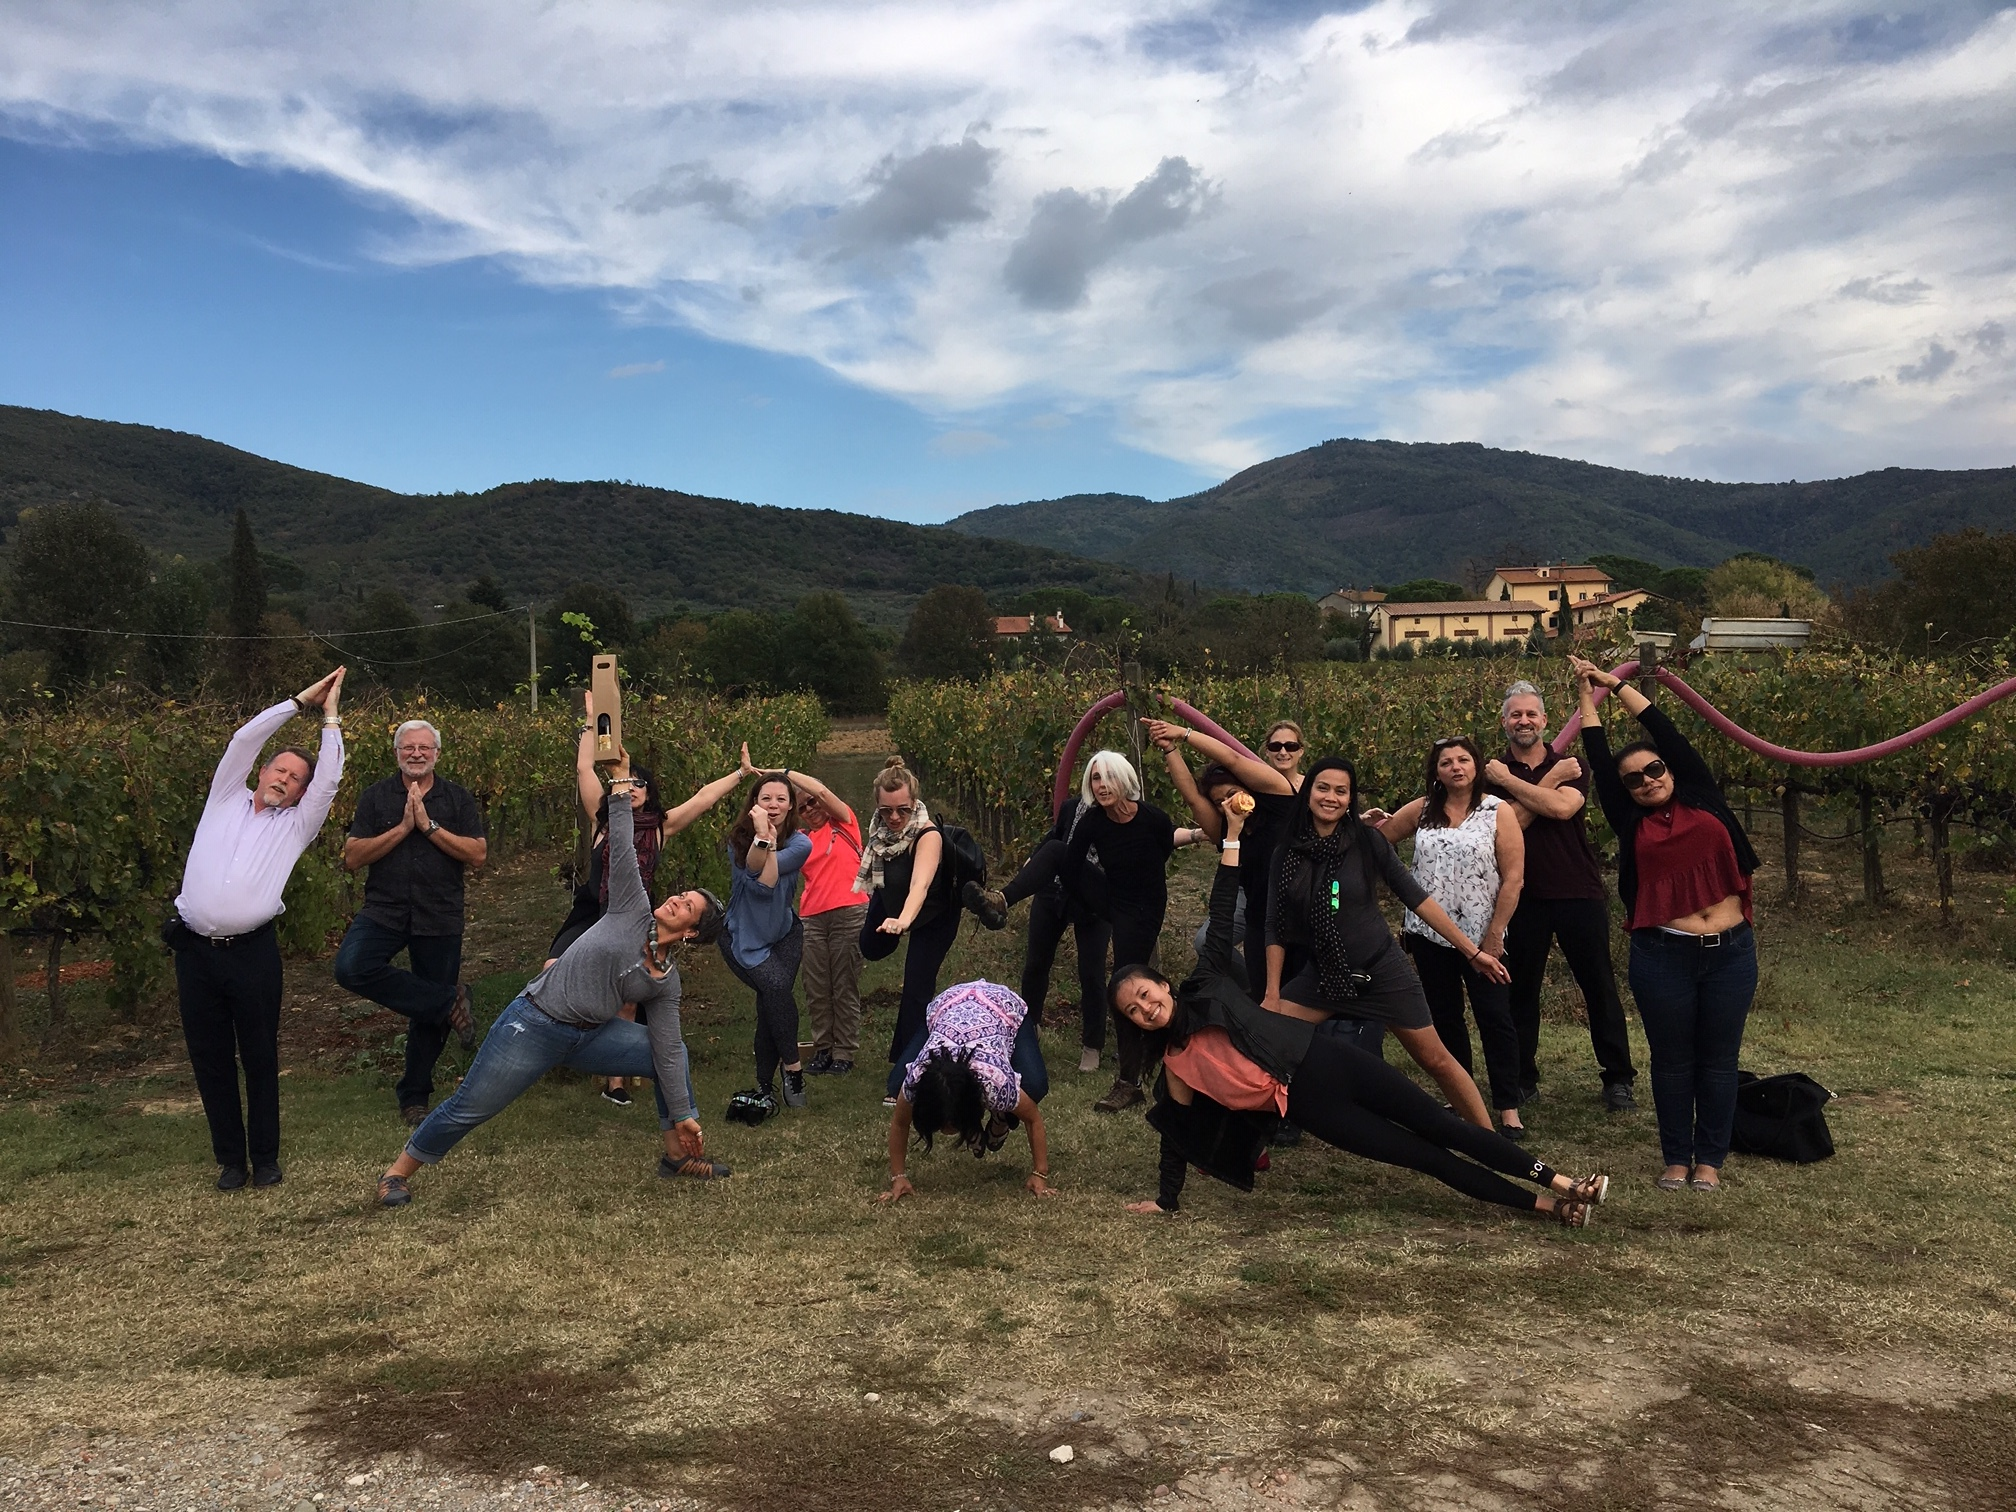 vinyard group photo 2018 italy retreat.JPG